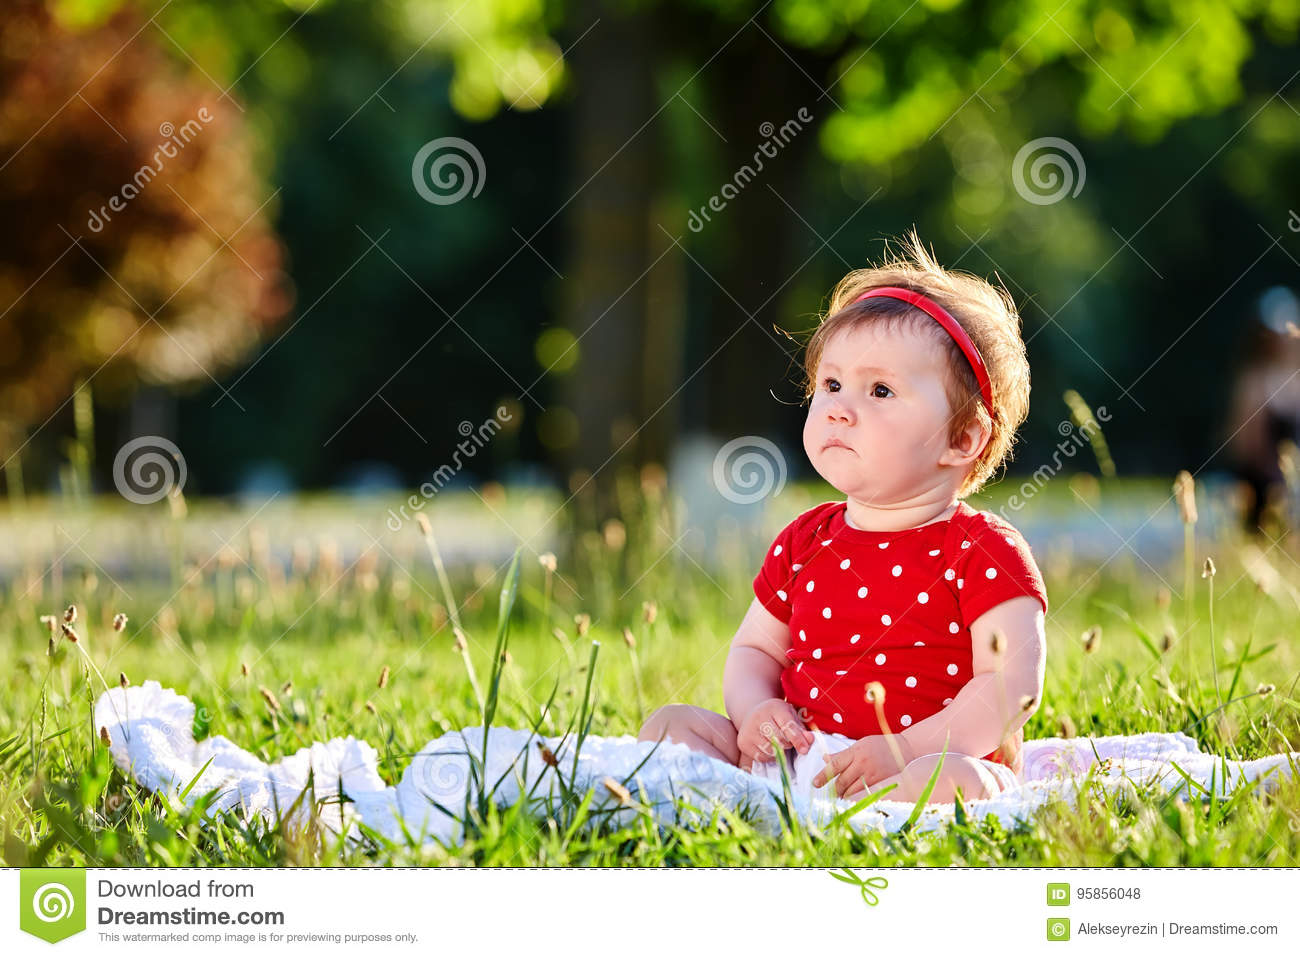 Cute adorable nice baby girl in red spring dress smiling sitting under the tree